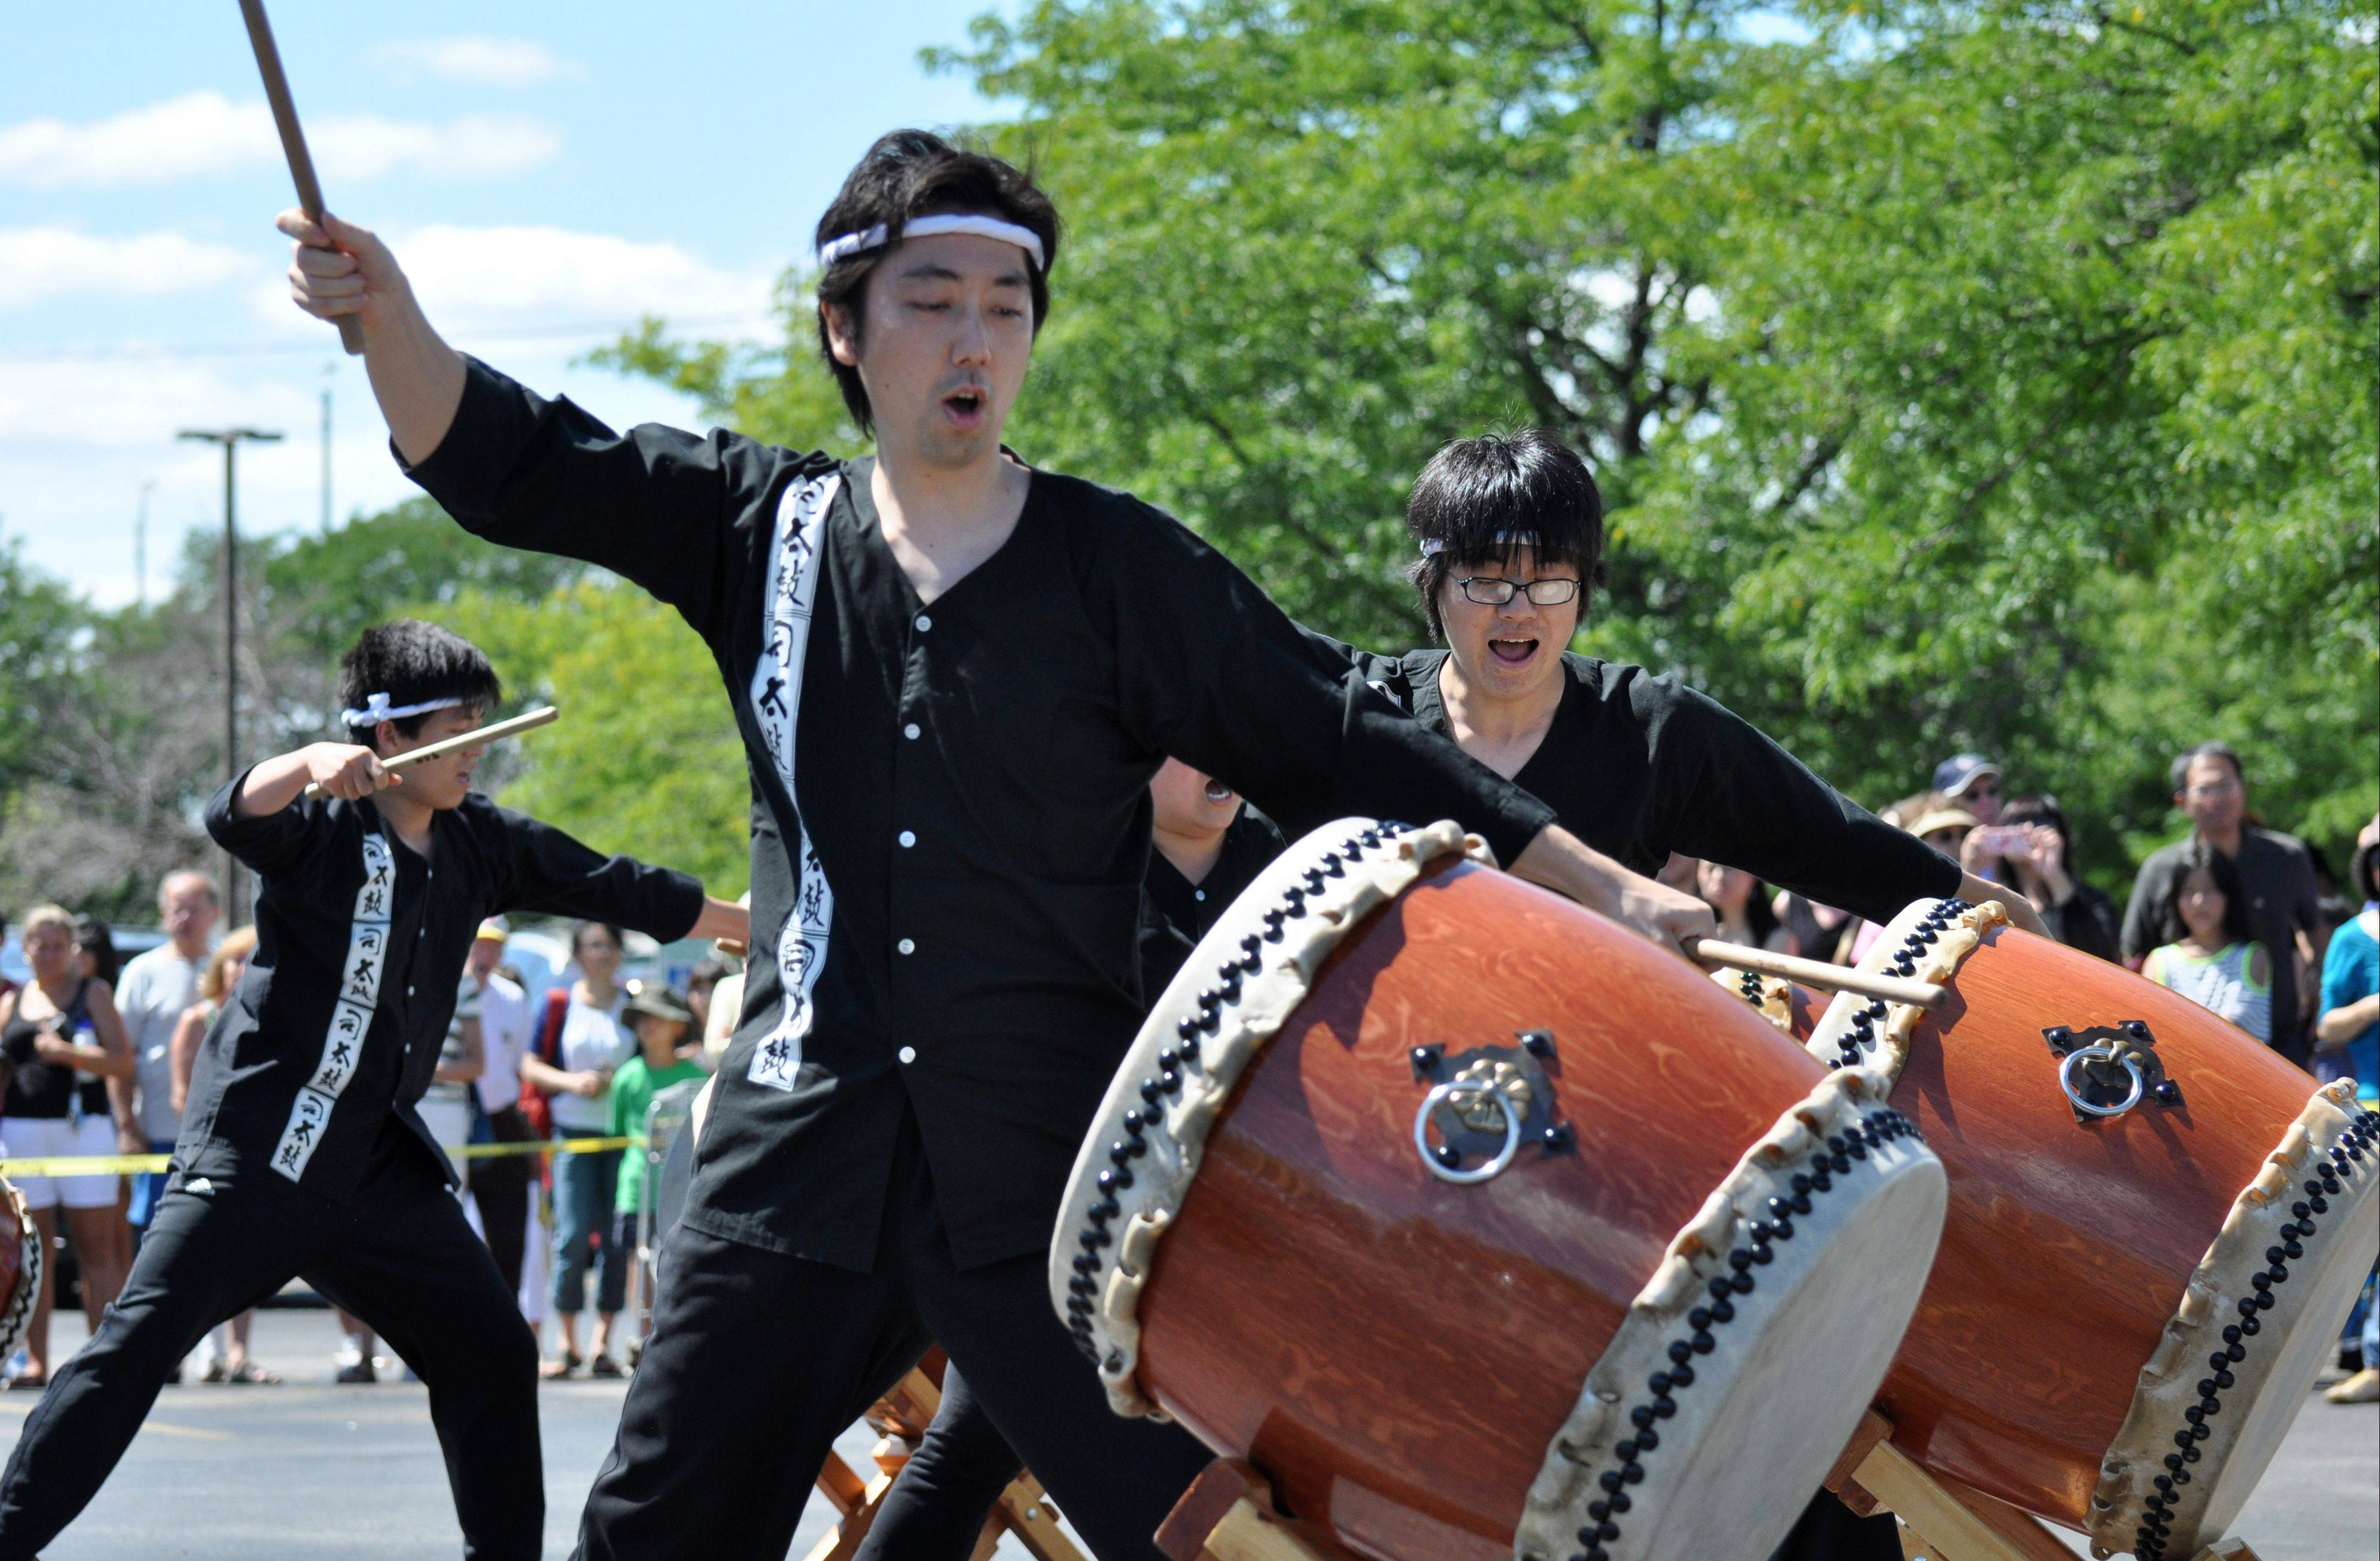 Tsukasa Taiko performs during the Natsu-Matsuri Festival held Saturday at Mitsuwa Marketplace in Arlington Heights.